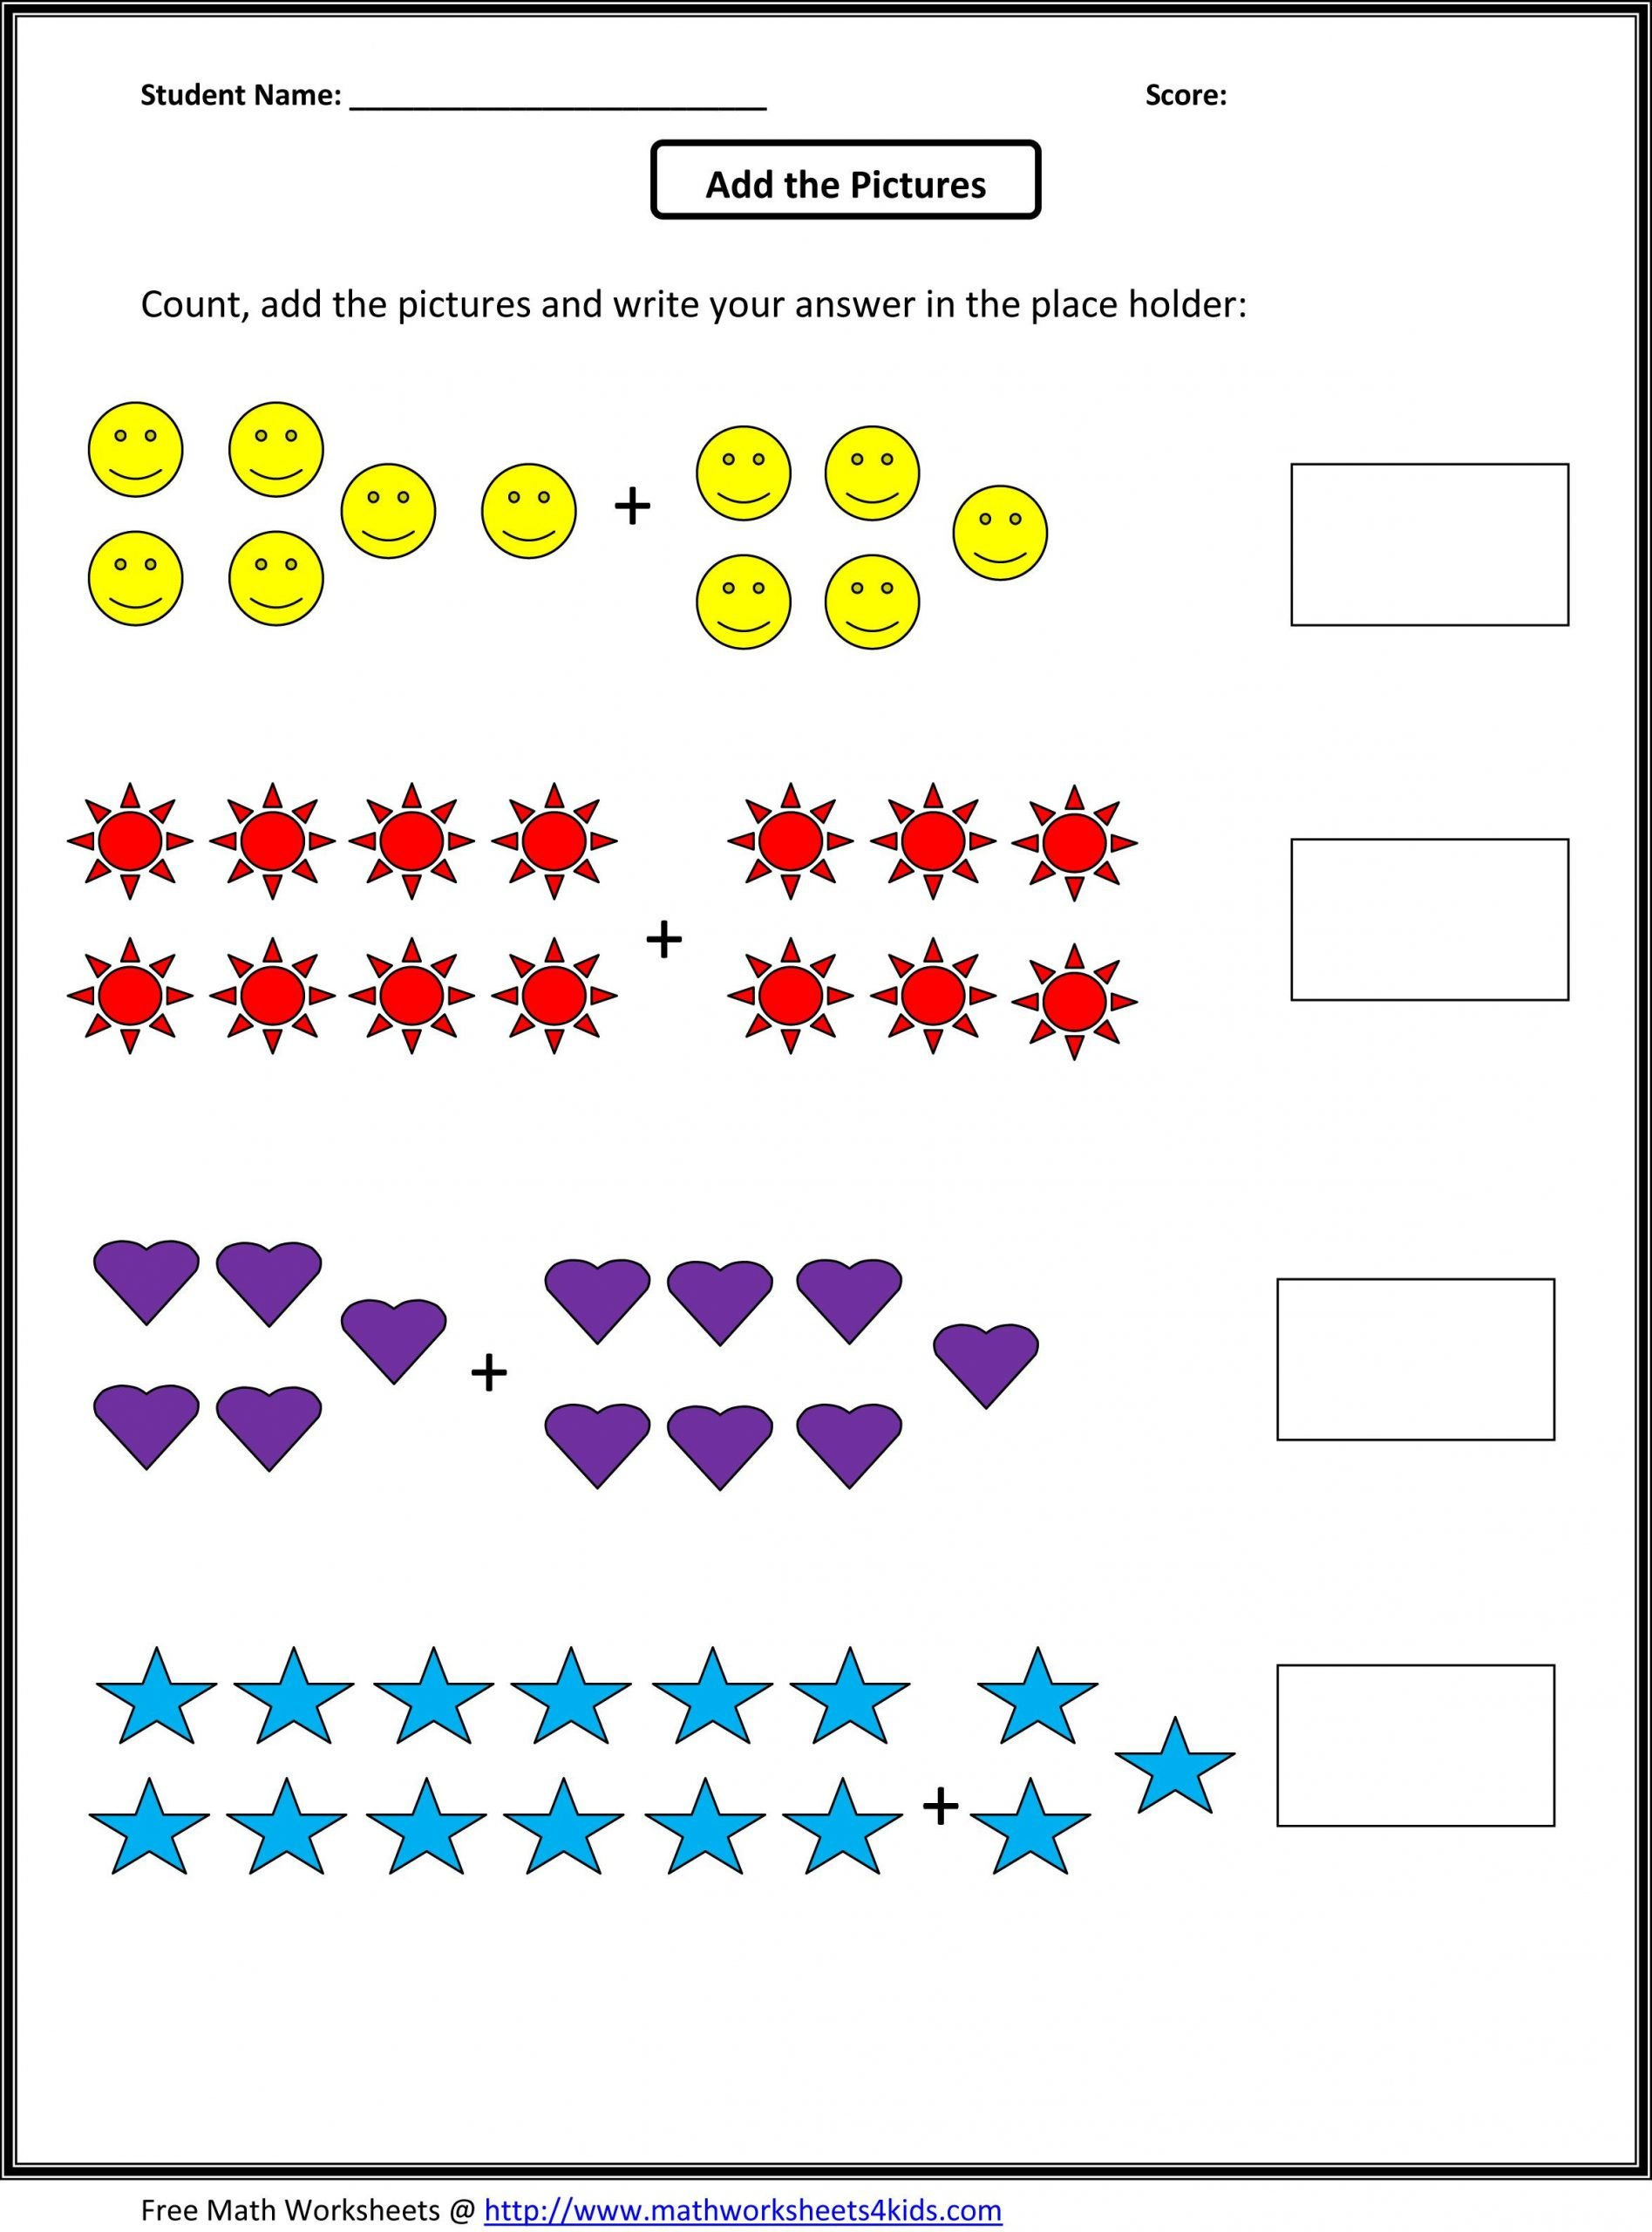 addition worksheets for grade 1 with pictures